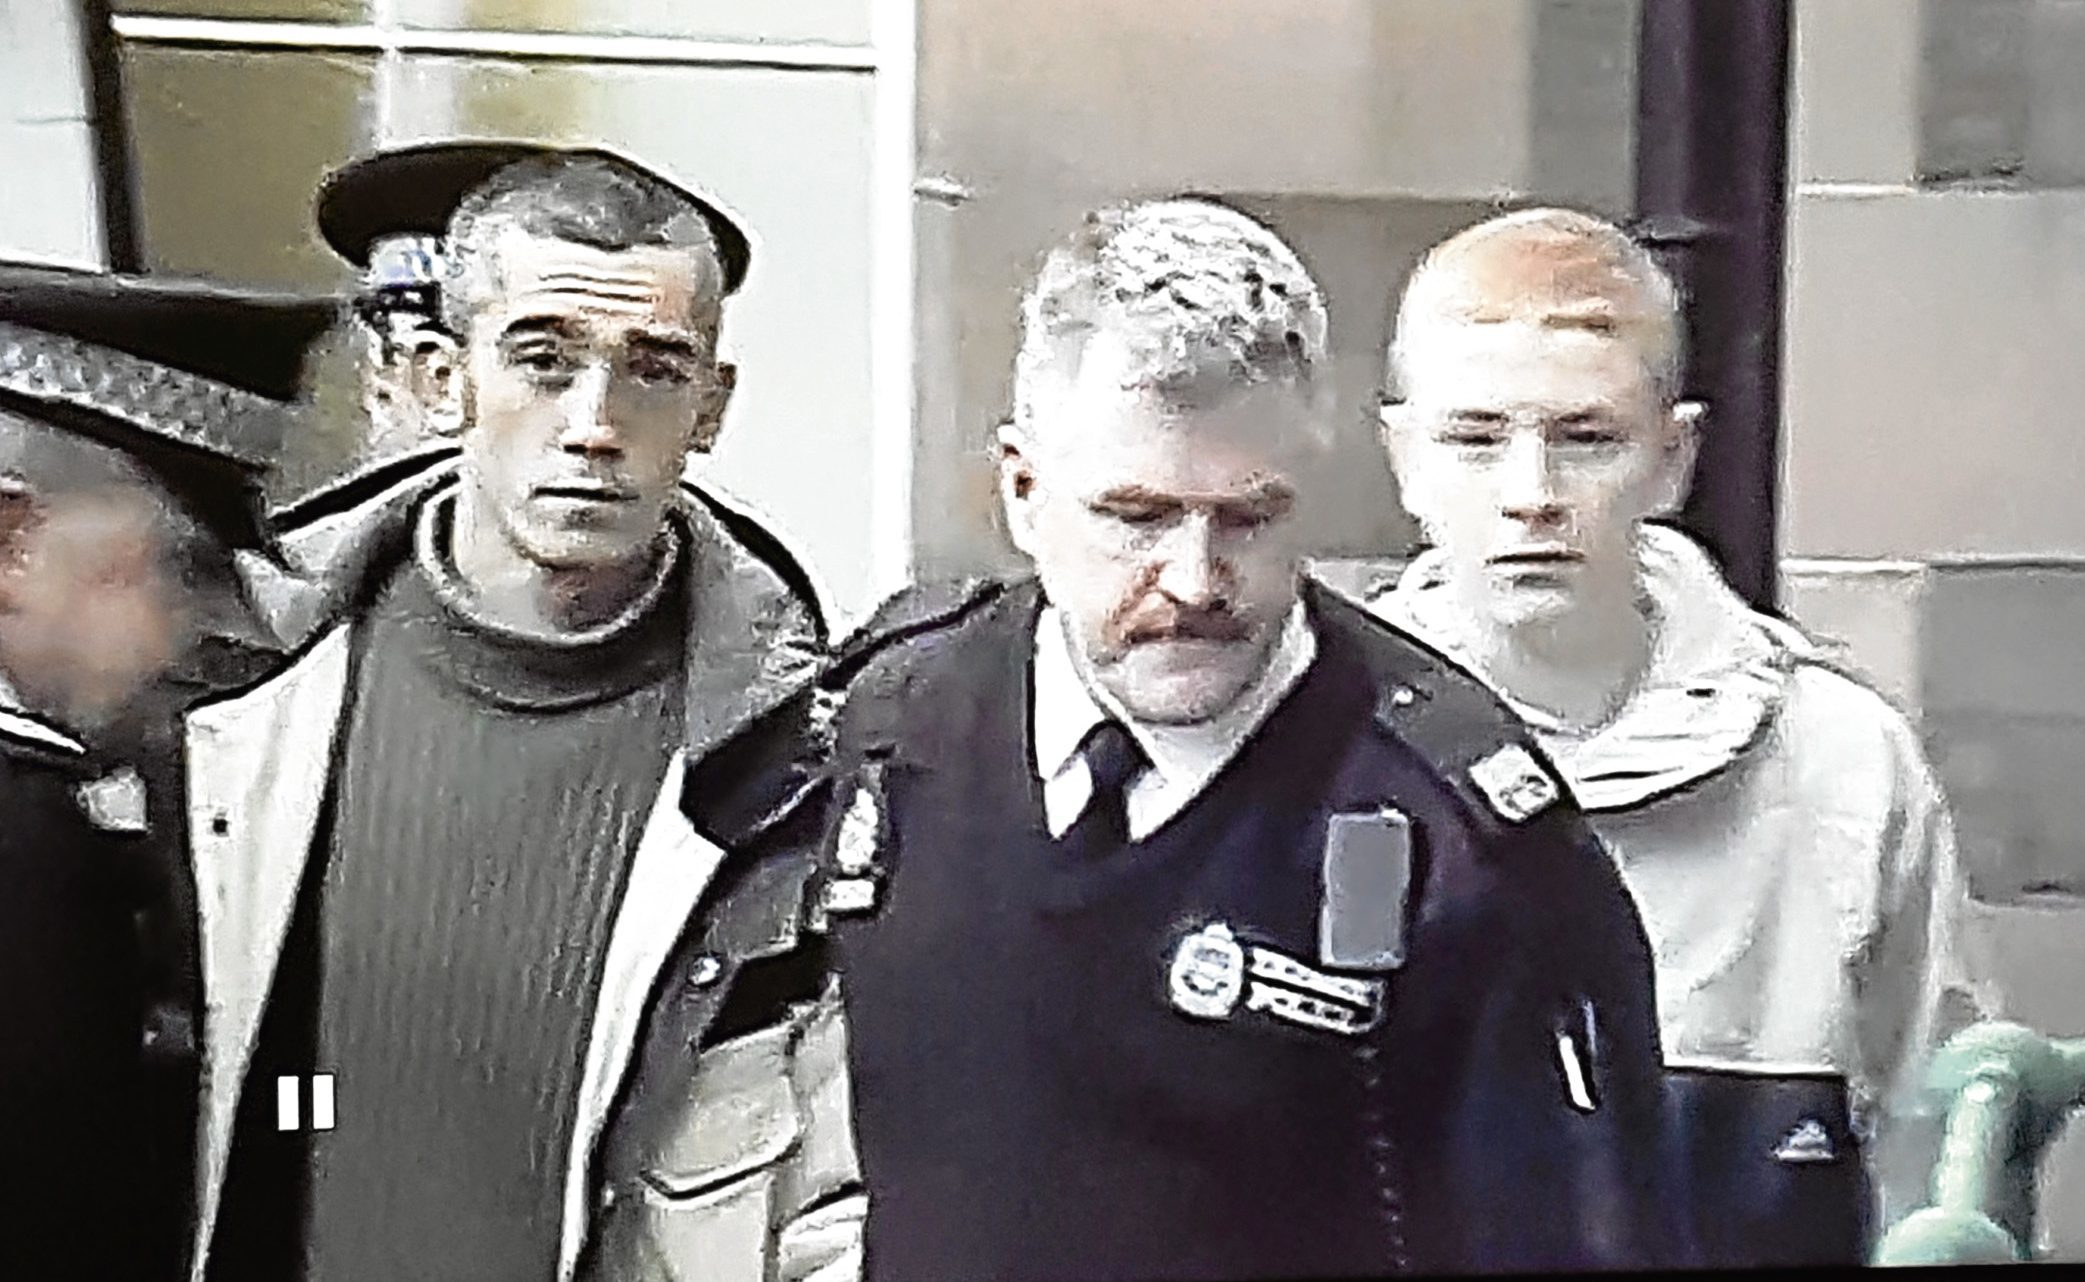 Robert Stratton, left, and Robbie McIntosh pictured being led away in 2002.